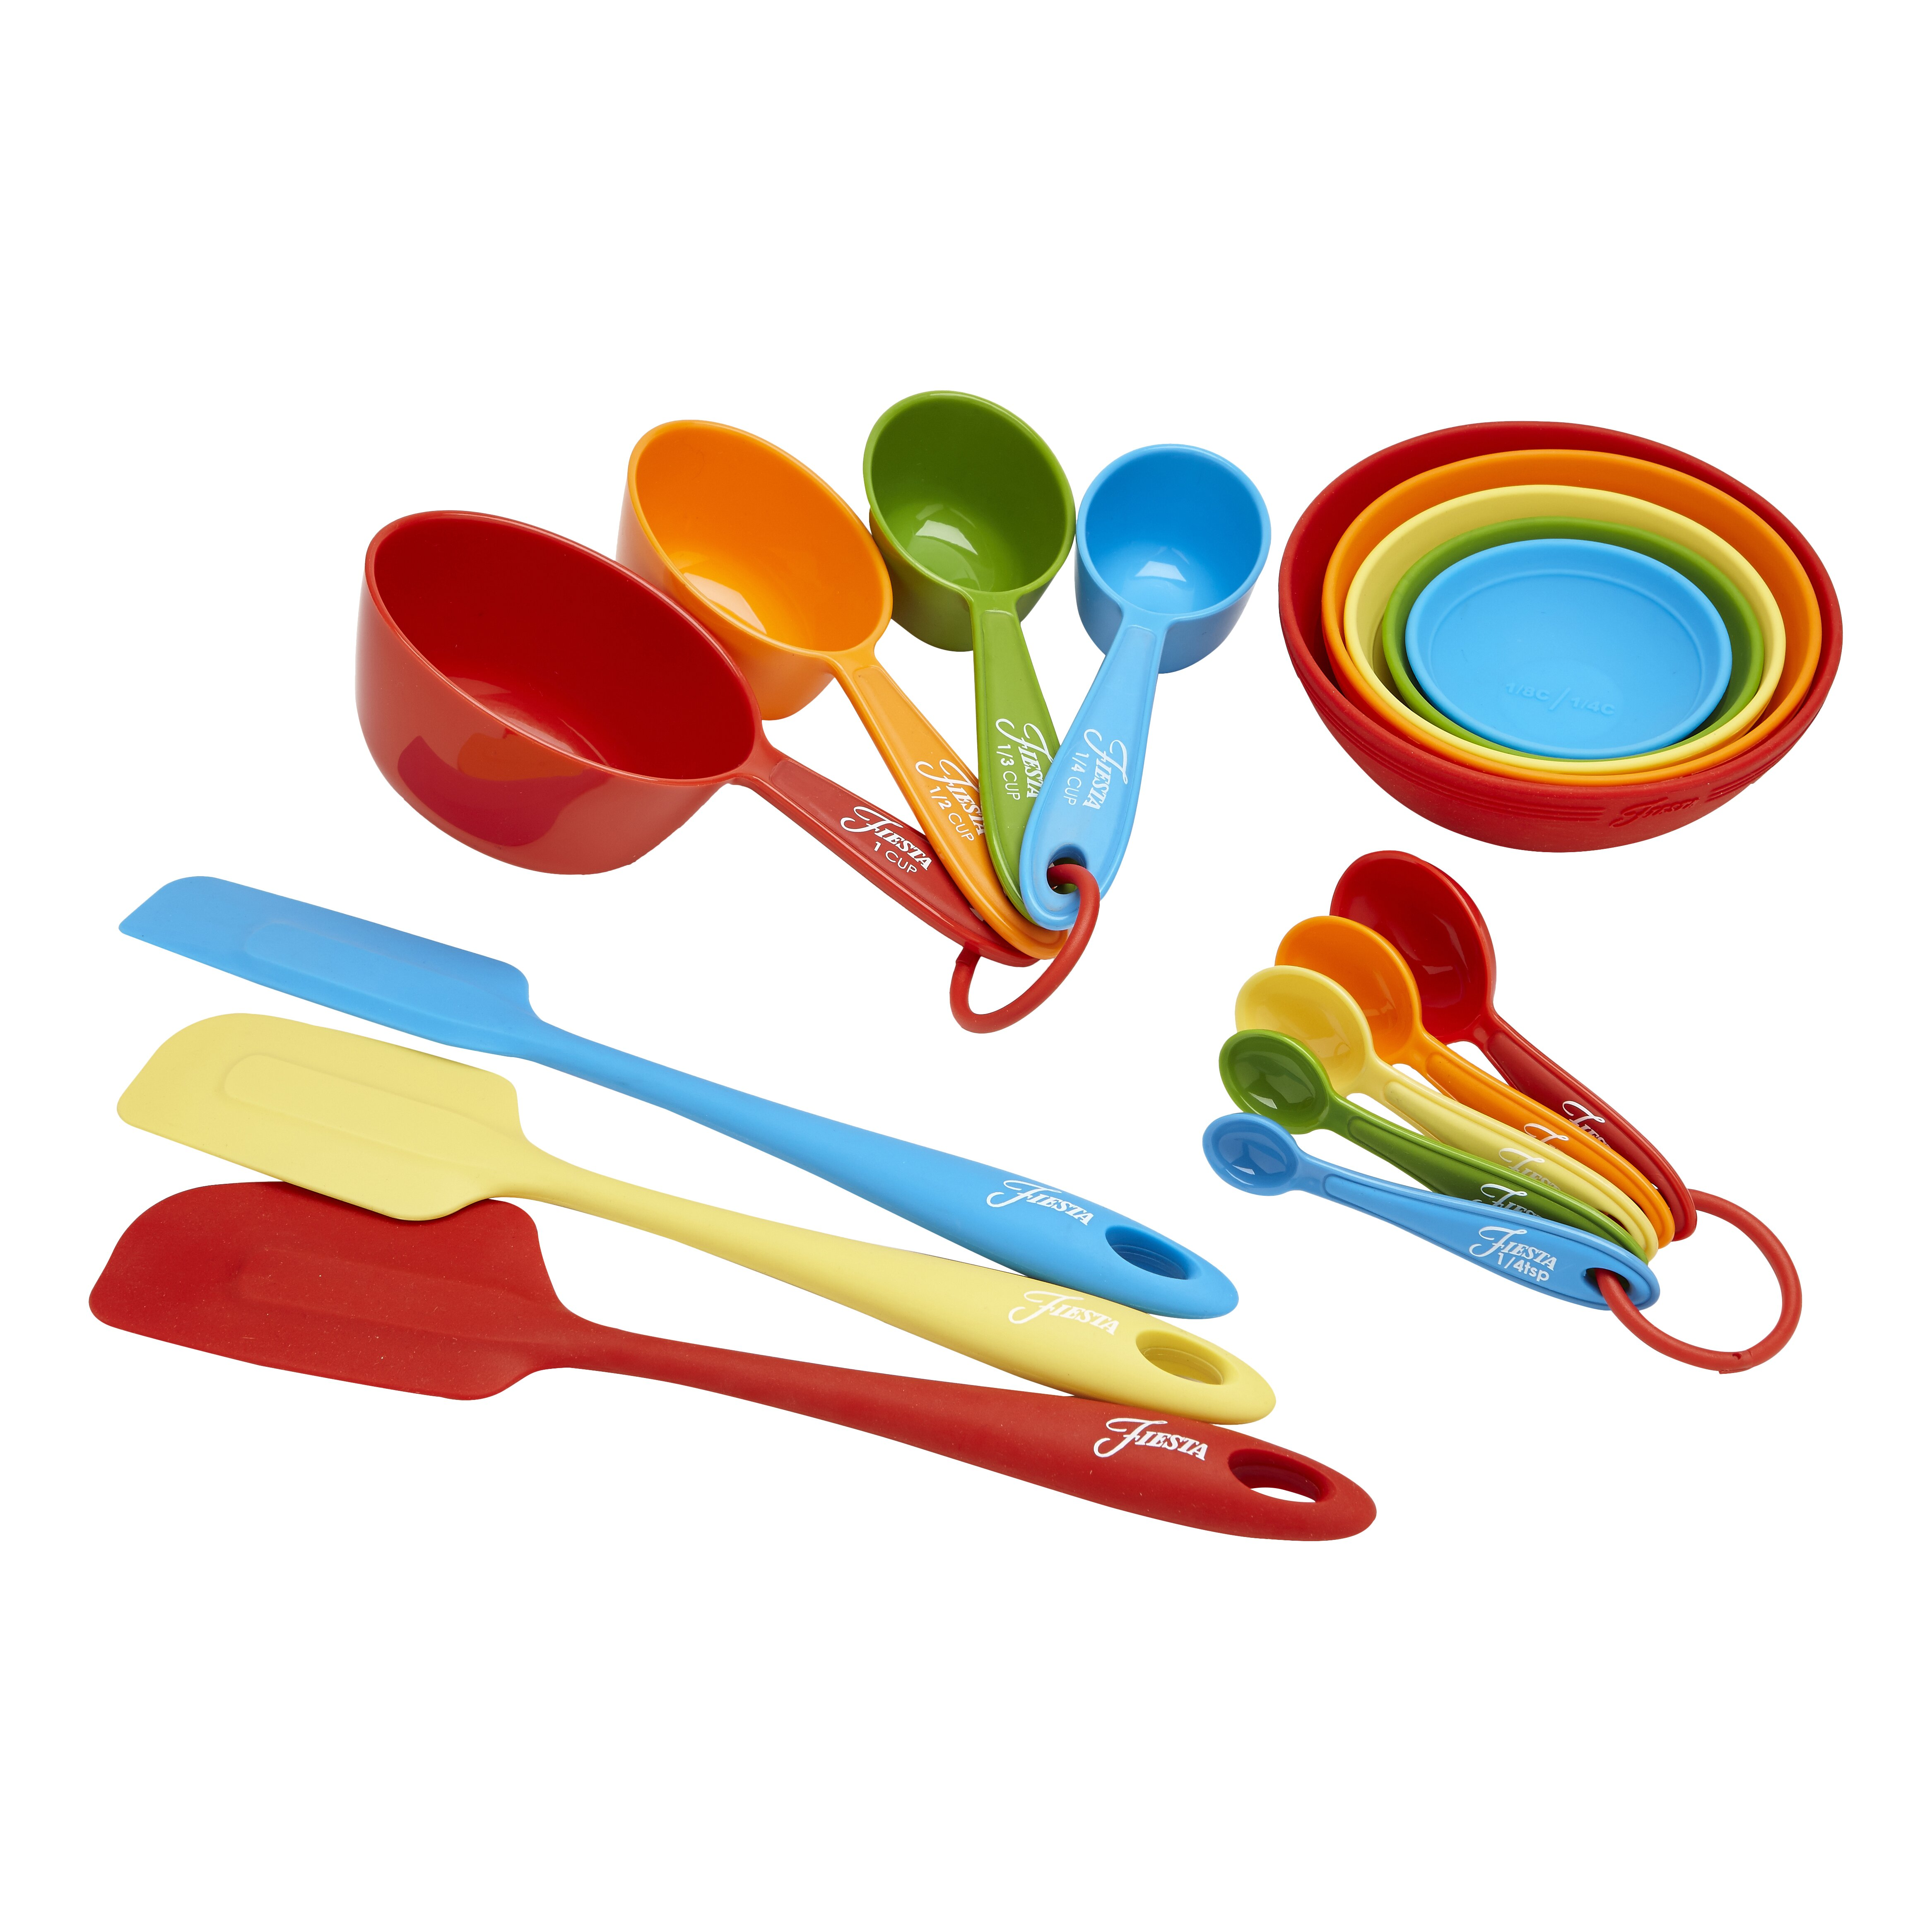 Decorative Measuring Spoons And Cups Fiesta 17 Piece Silicone Baking Utensil Set Reviews Wayfair